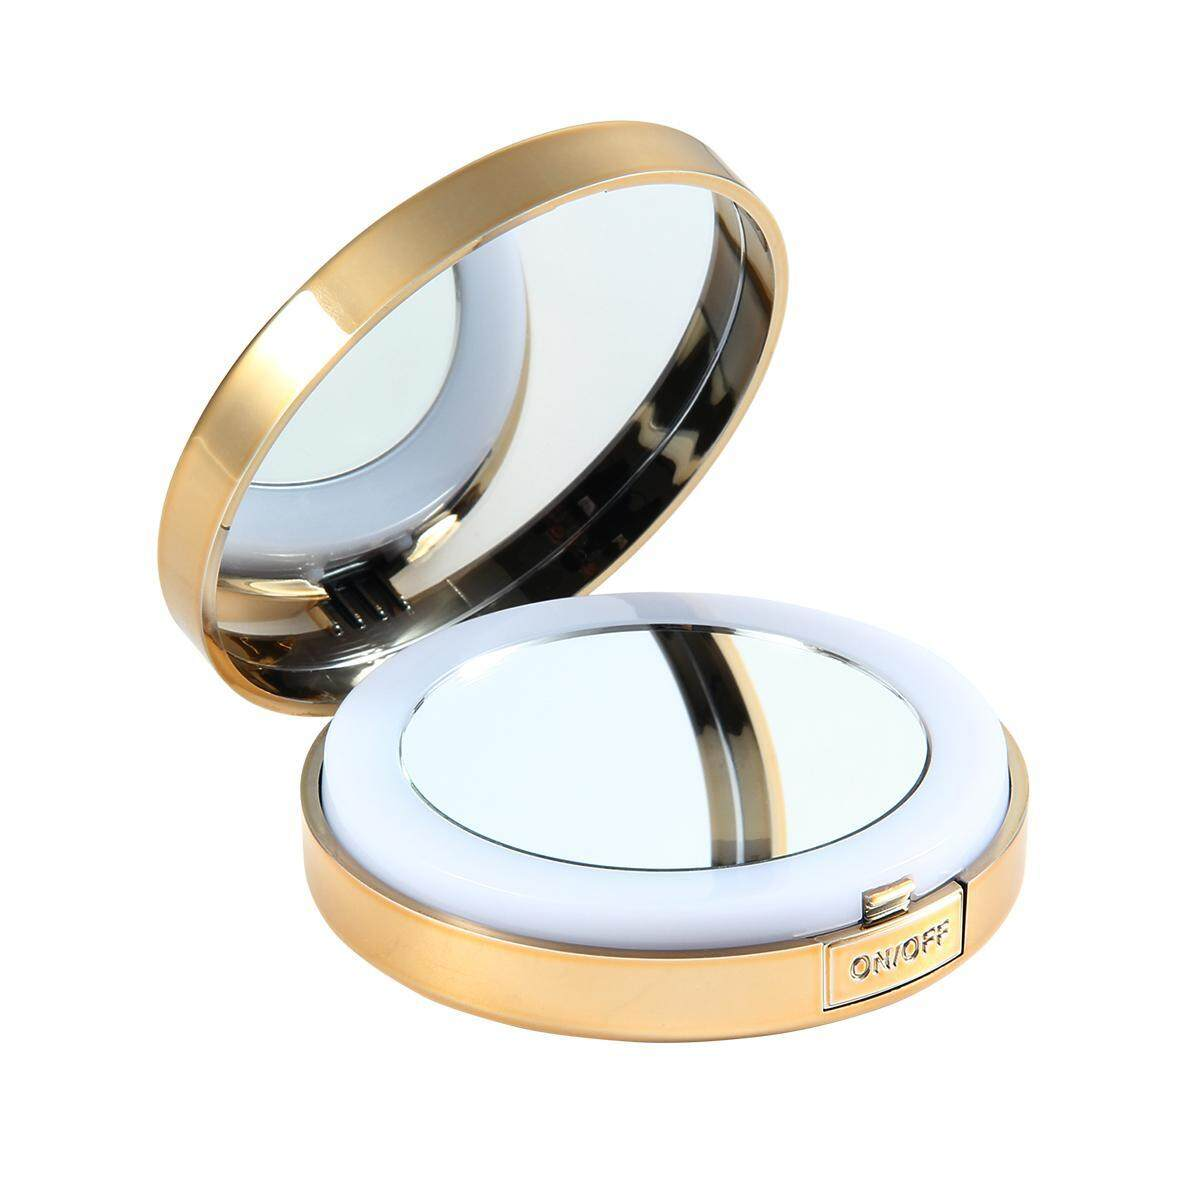 Small Lighted Makeup Mirror.Goodgreat Led Lighted Travel Makeup Mirror Small Handheld Mirror 1x 10x Magnifying Mirror Portable Travel Makeup Mirror Lighted Magnified Mirror